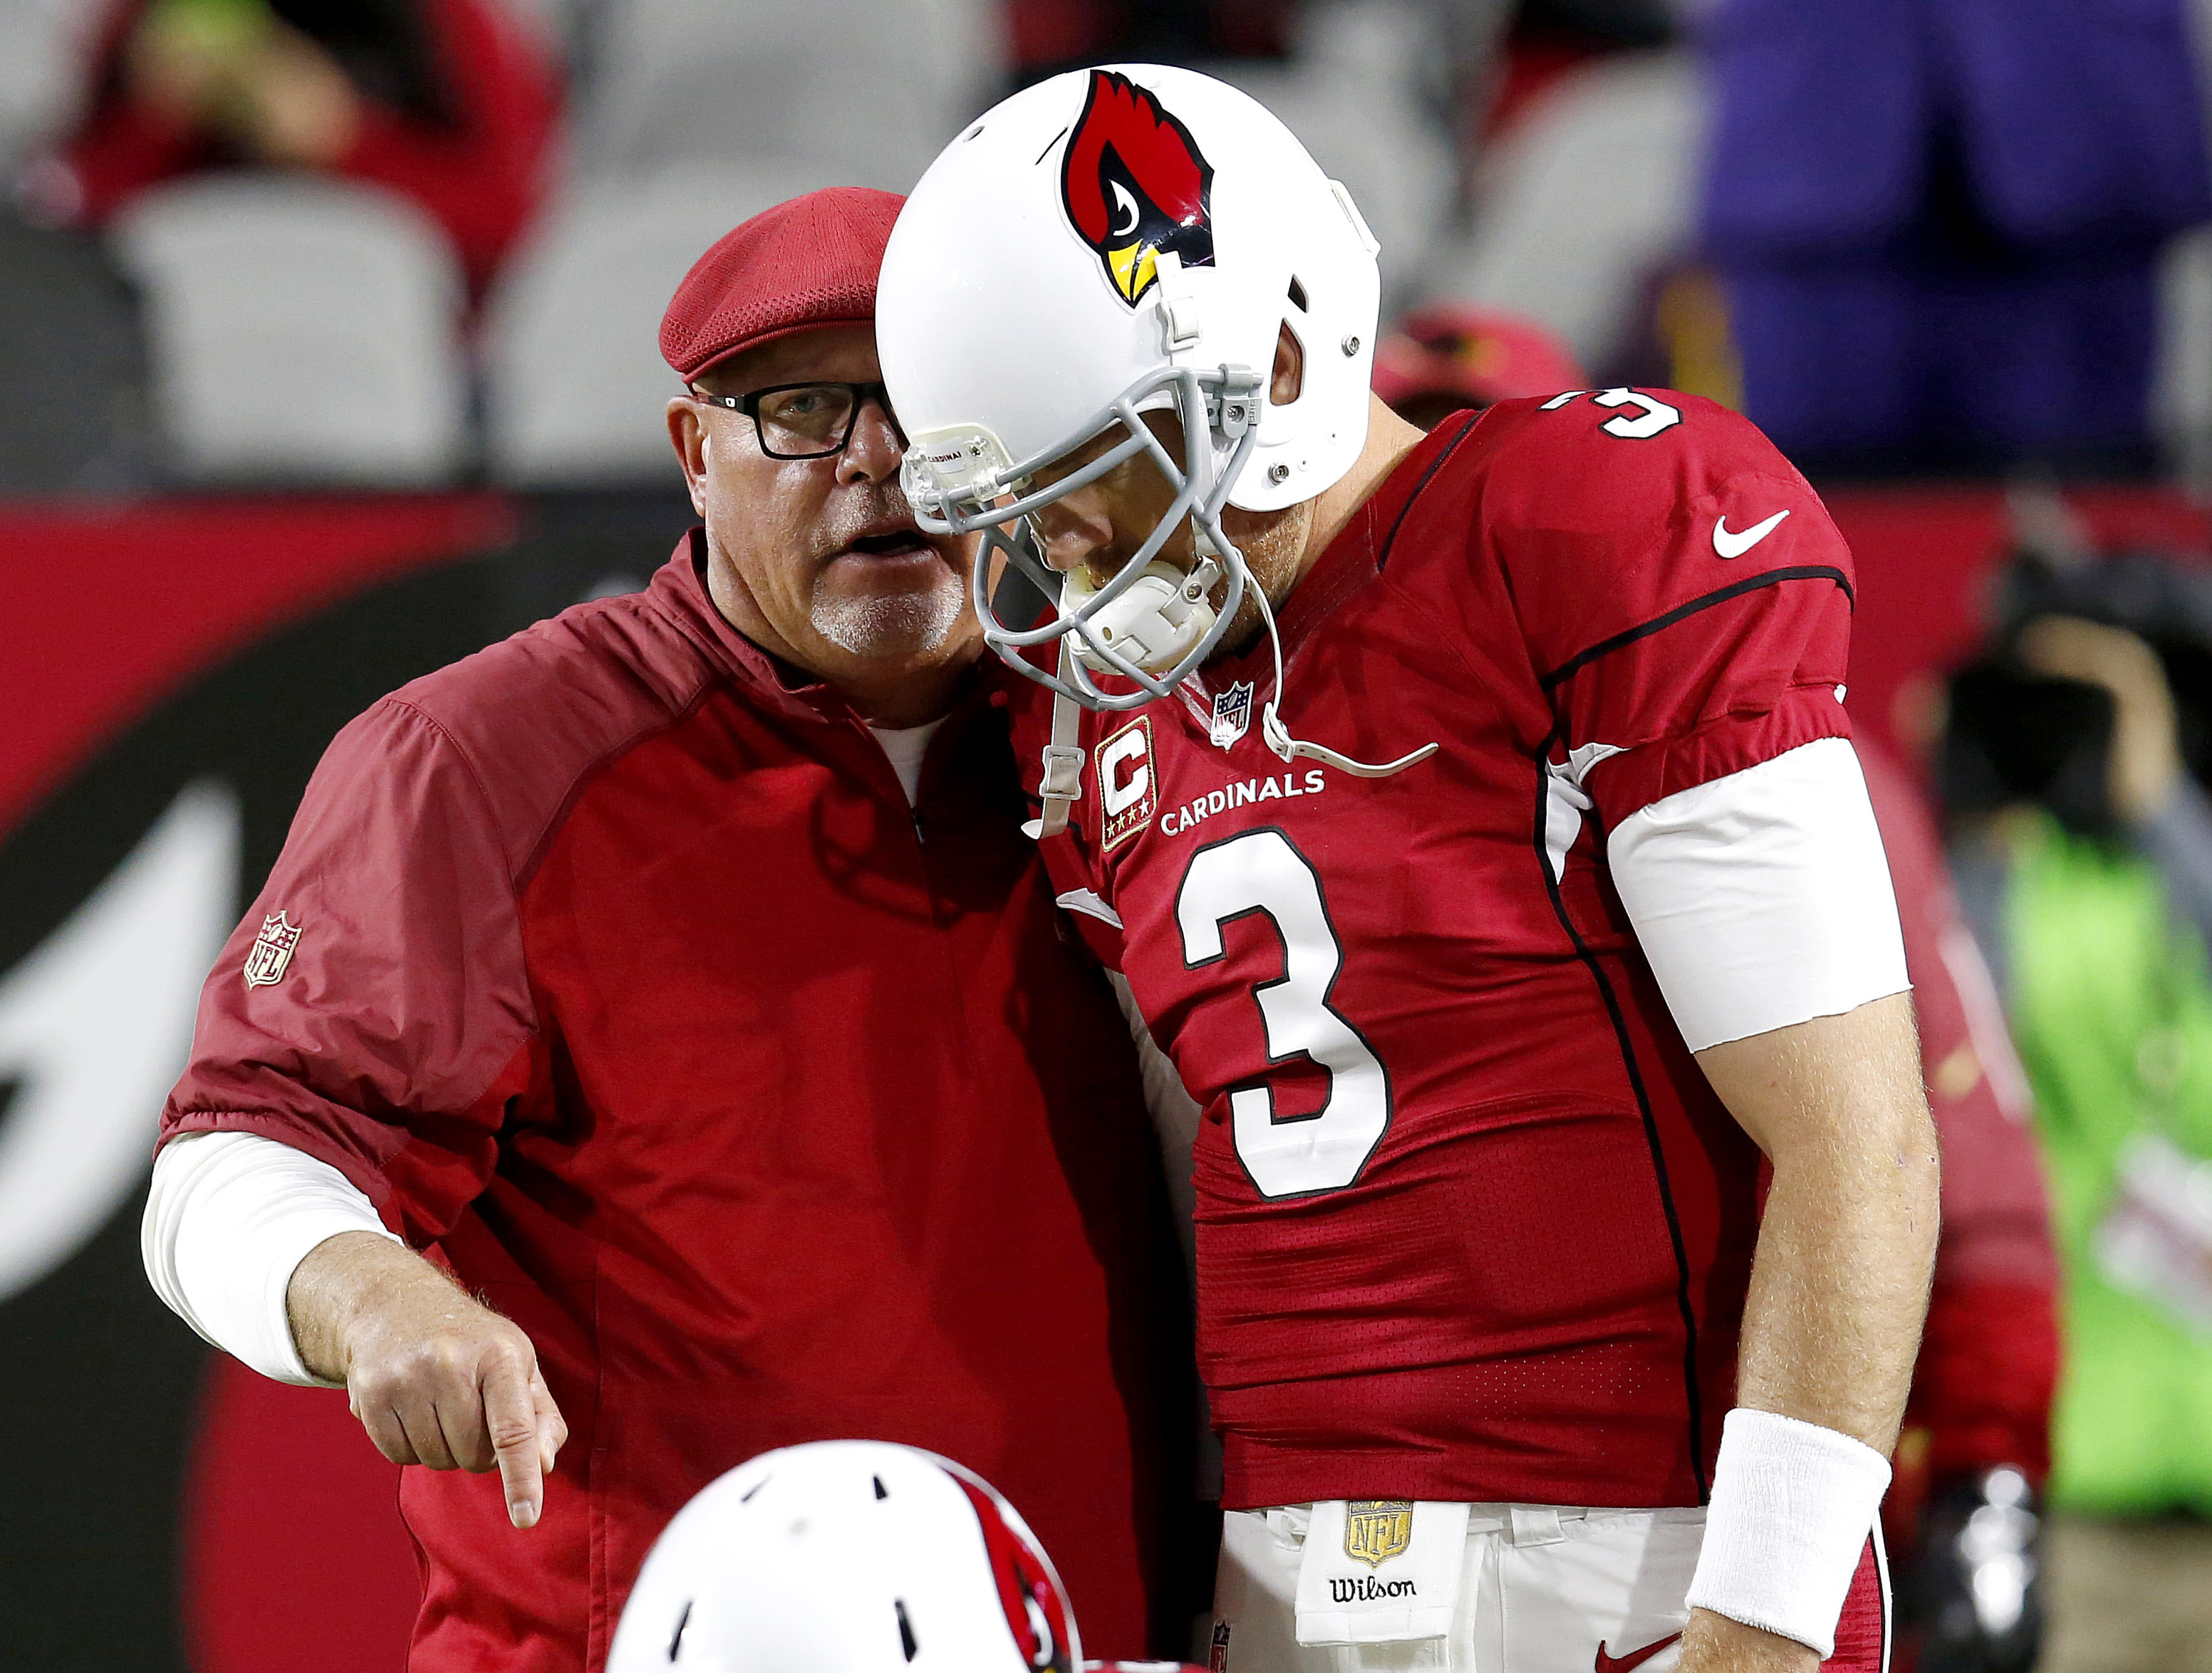 FILE - In this Dec. 10, 2015, file photo, Arizona Cardinals quarterback Carson Palmer and coach Bruce Arians talk prior to an NFL football game against the Minnesota Vikings in Glendale, Ariz. The unbeaten Carolina Panthers are understandably hogging the